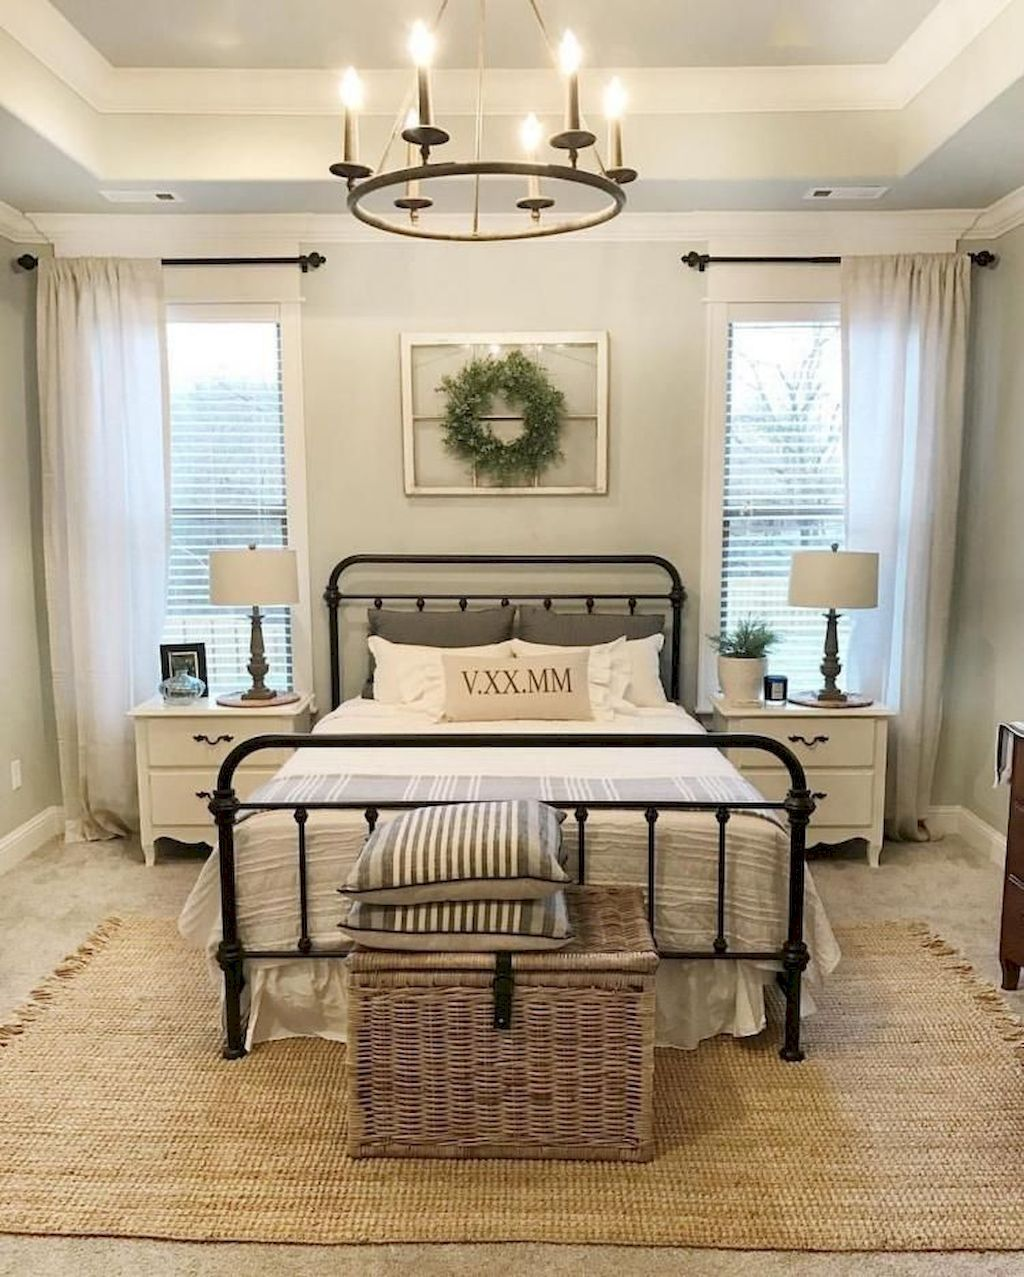 AWESOME FARMHOUSE RUSTIC MASTER BEDROOM IDEAS 37